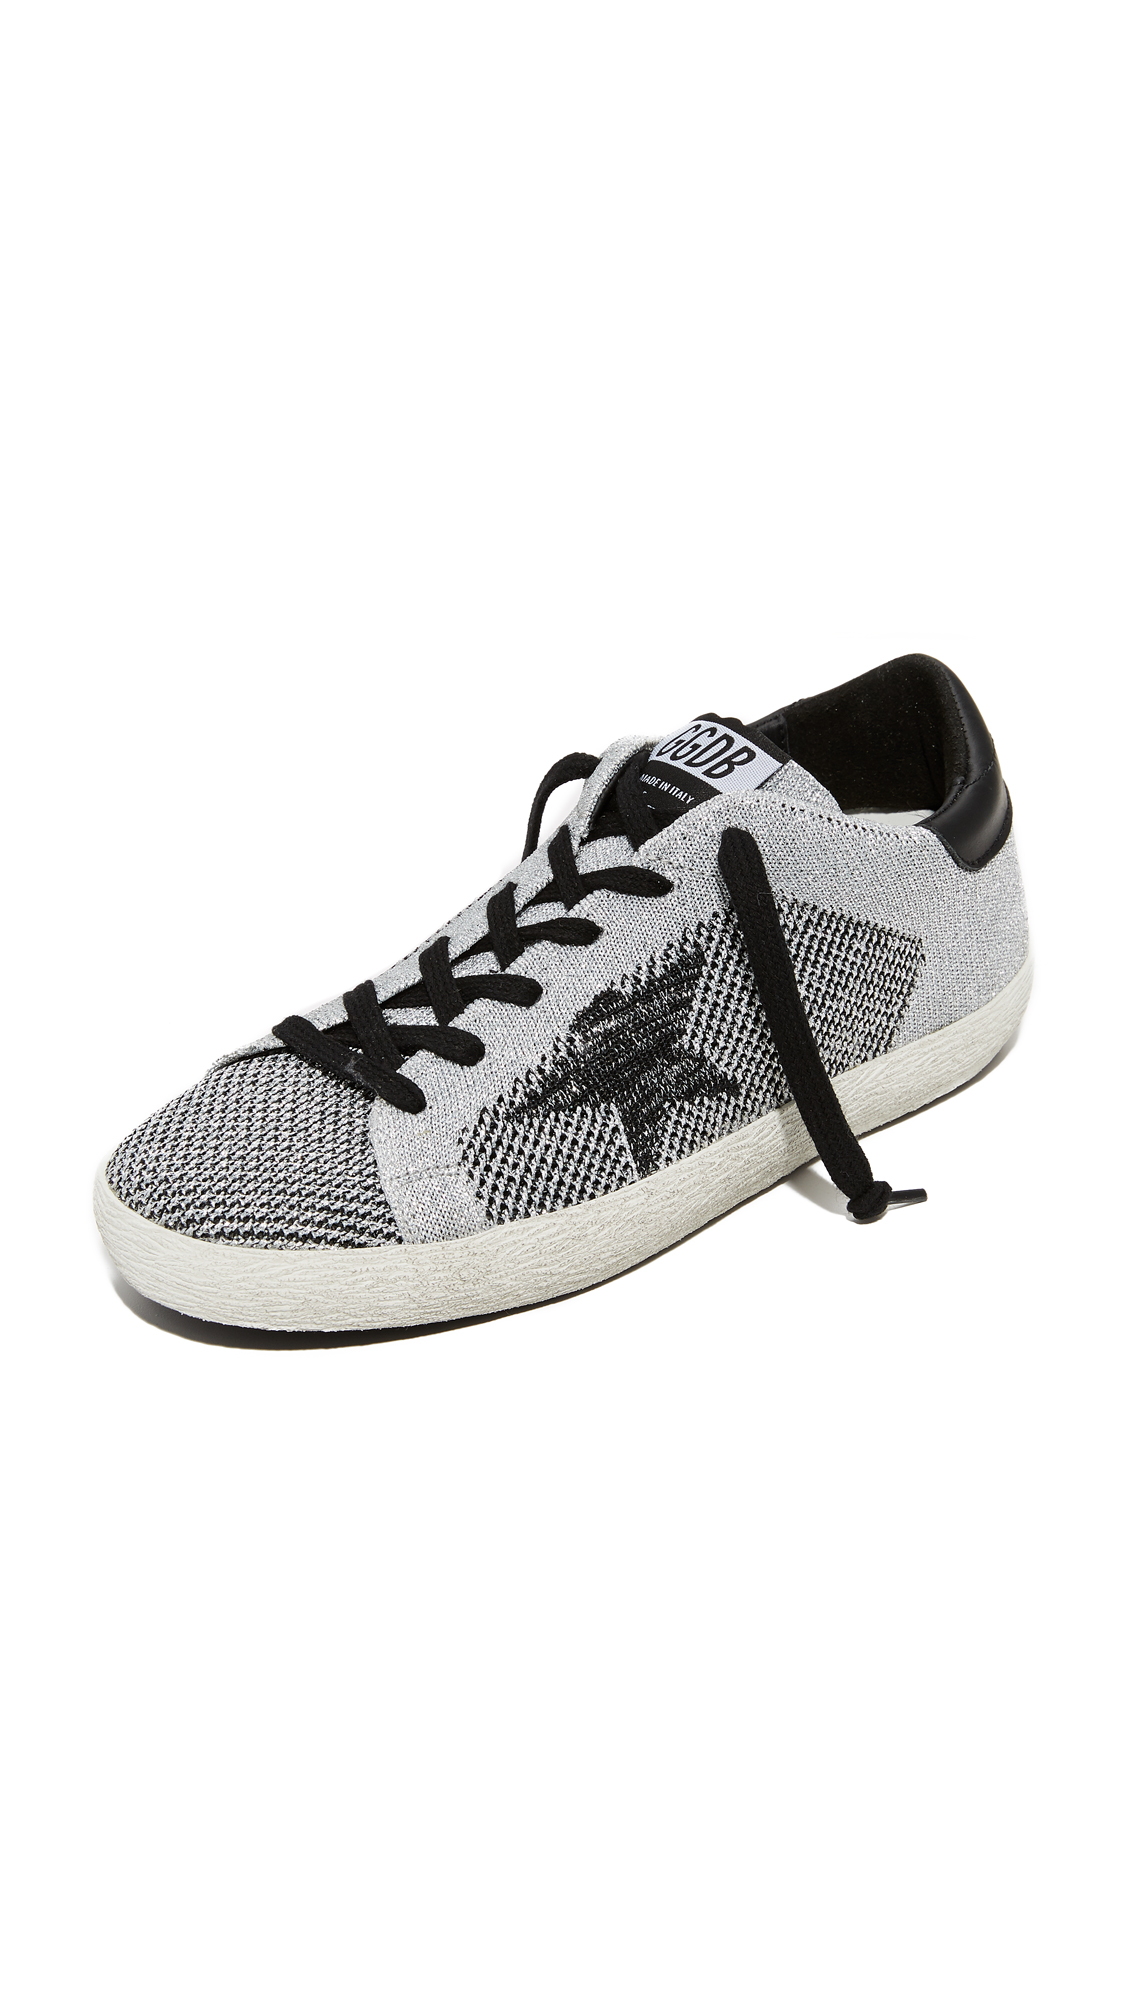 Golden Goose Superstar Sneakers - Silver/Grey